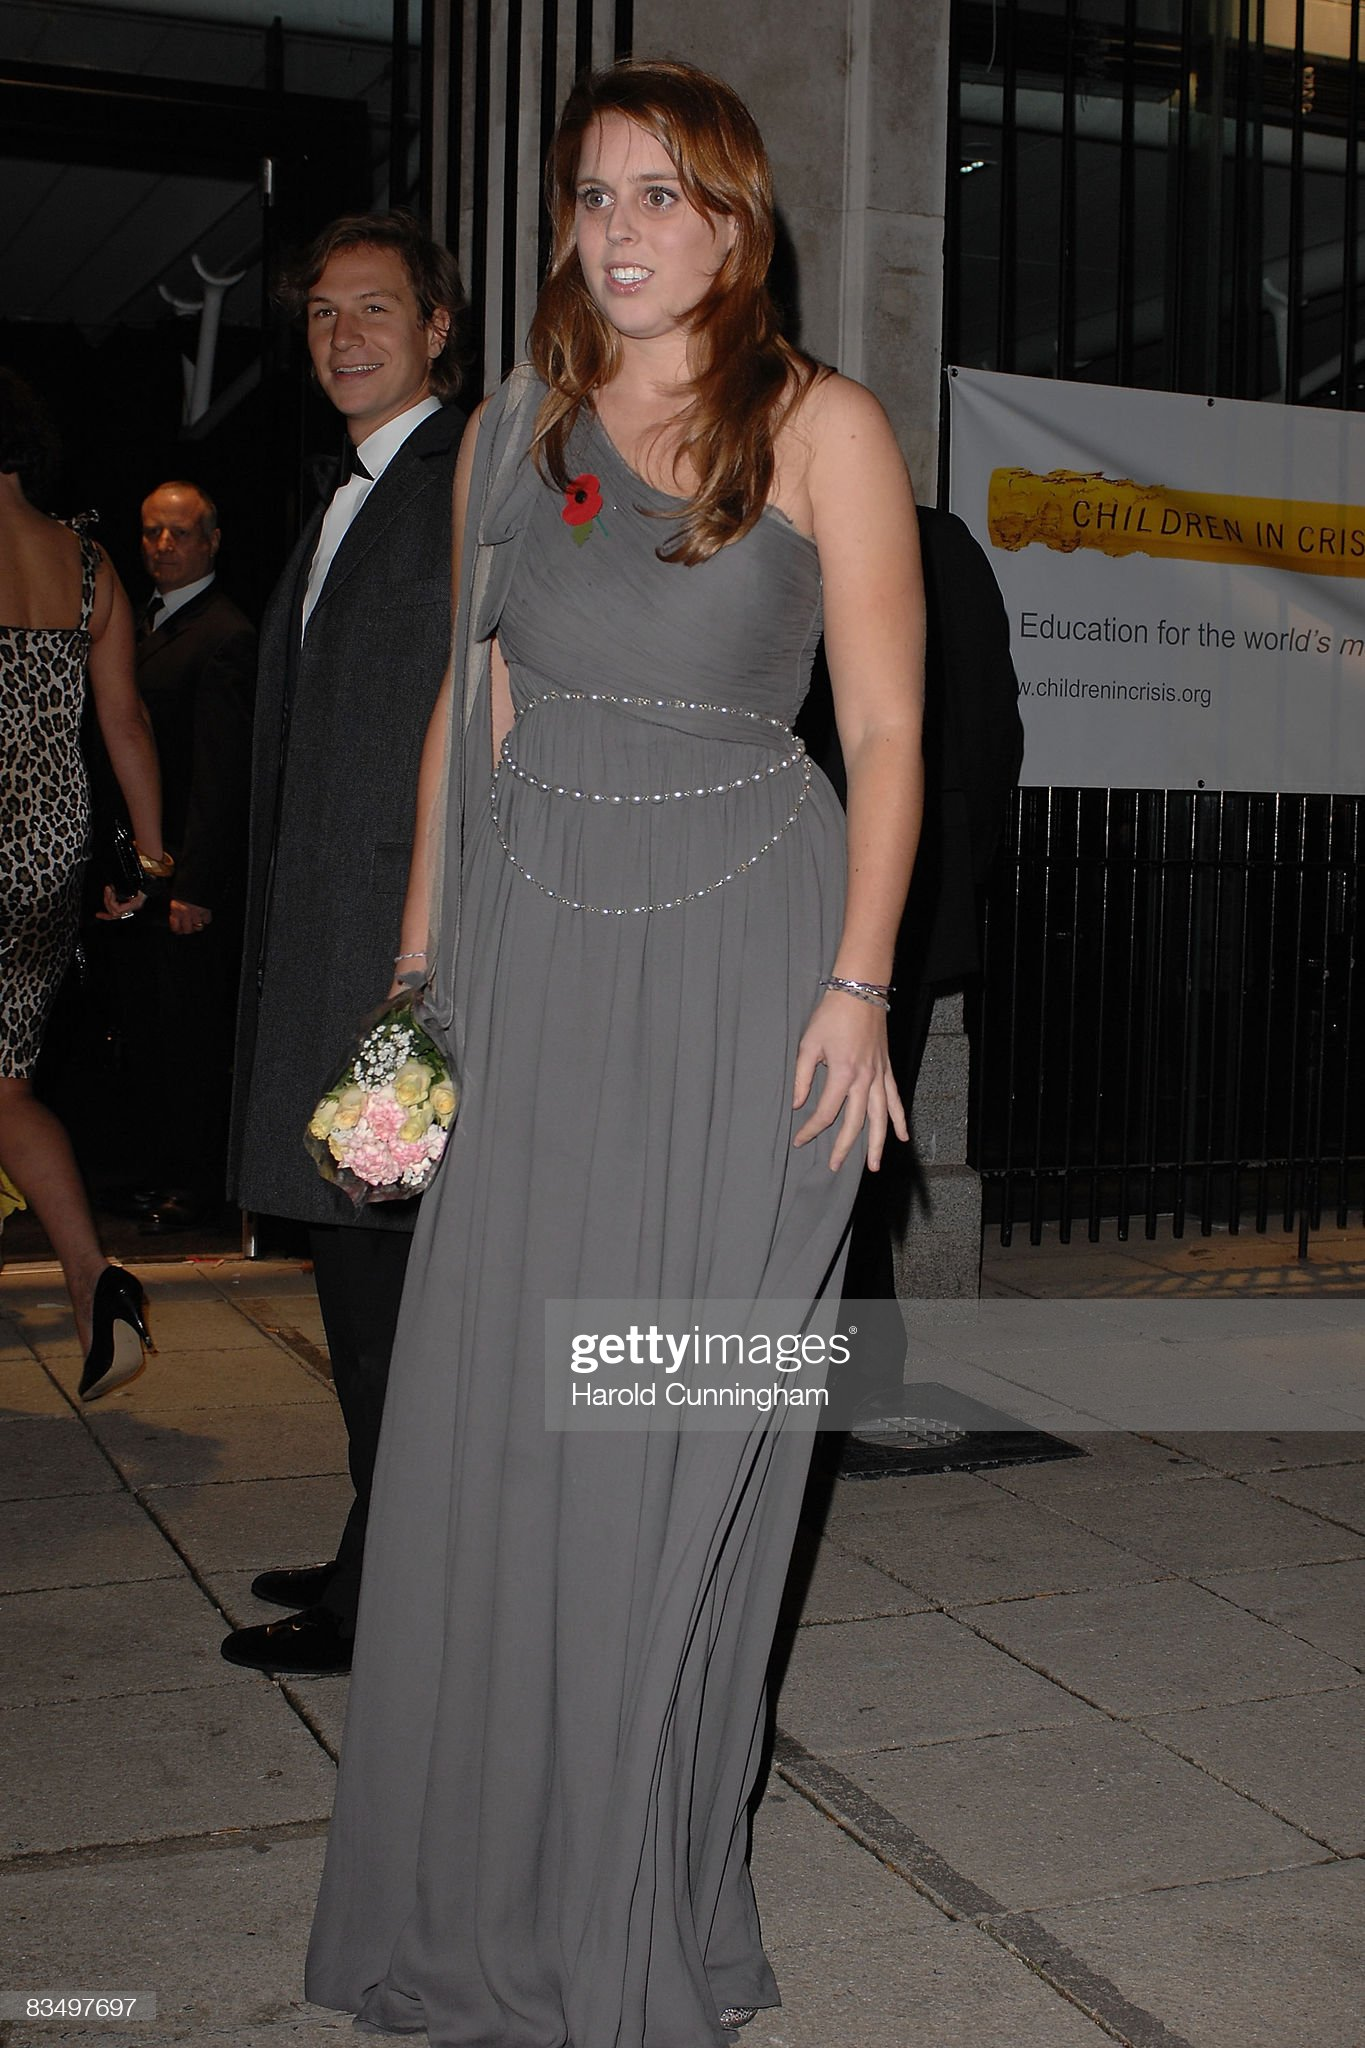 Children In Crisis 15th Anniversary Ball - Arrivals : News Photo